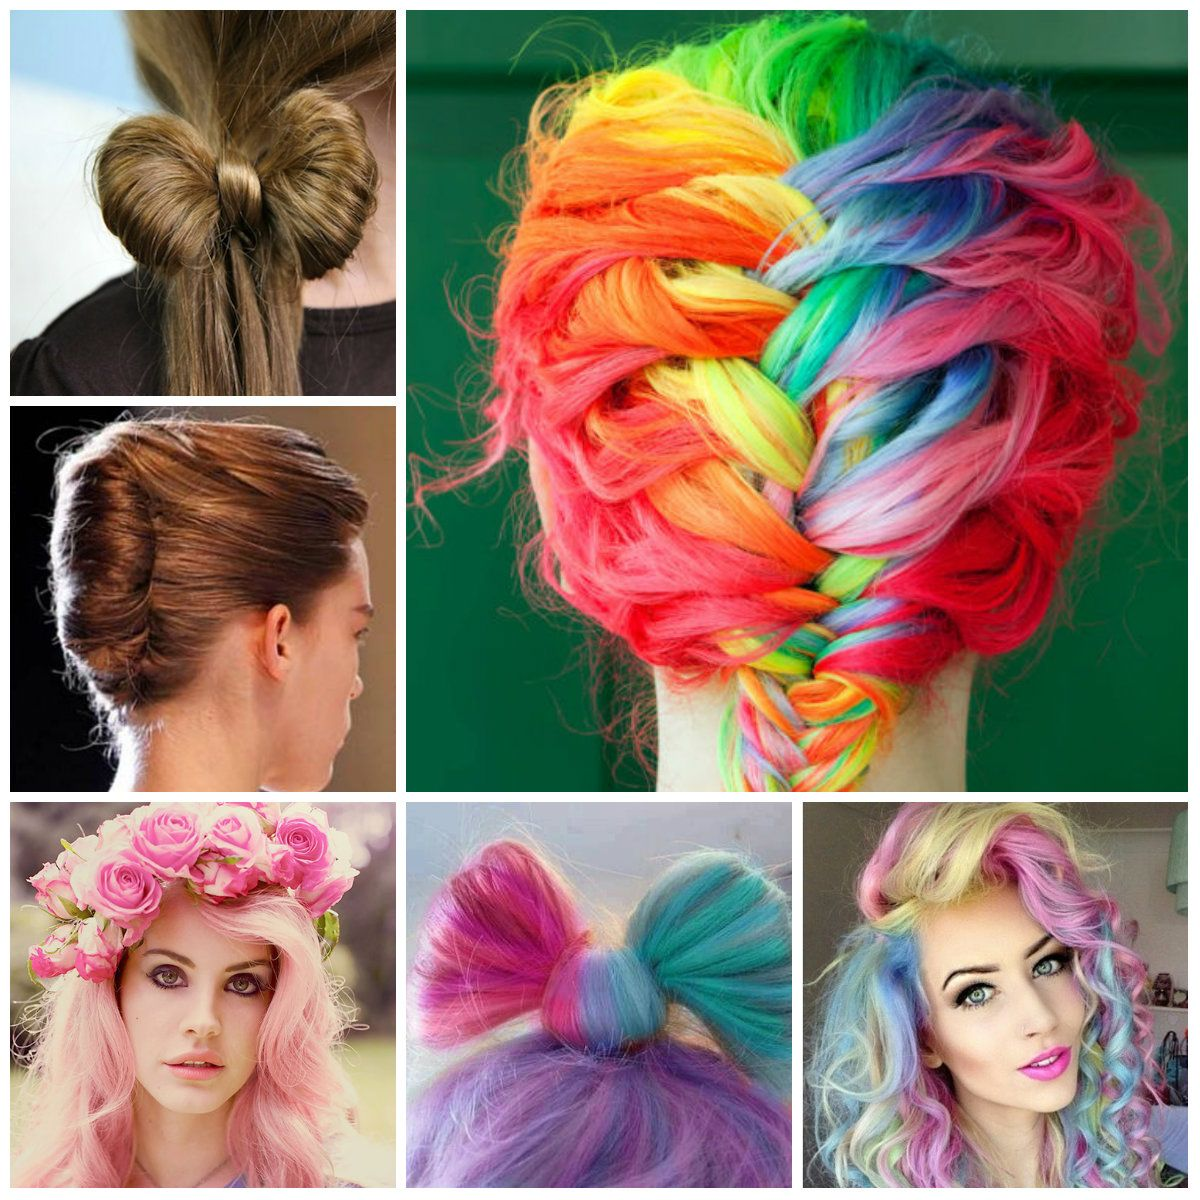 Creative Hair Color Ideas Image Collections Hair Coloring Ideas - Creative hairstyle color